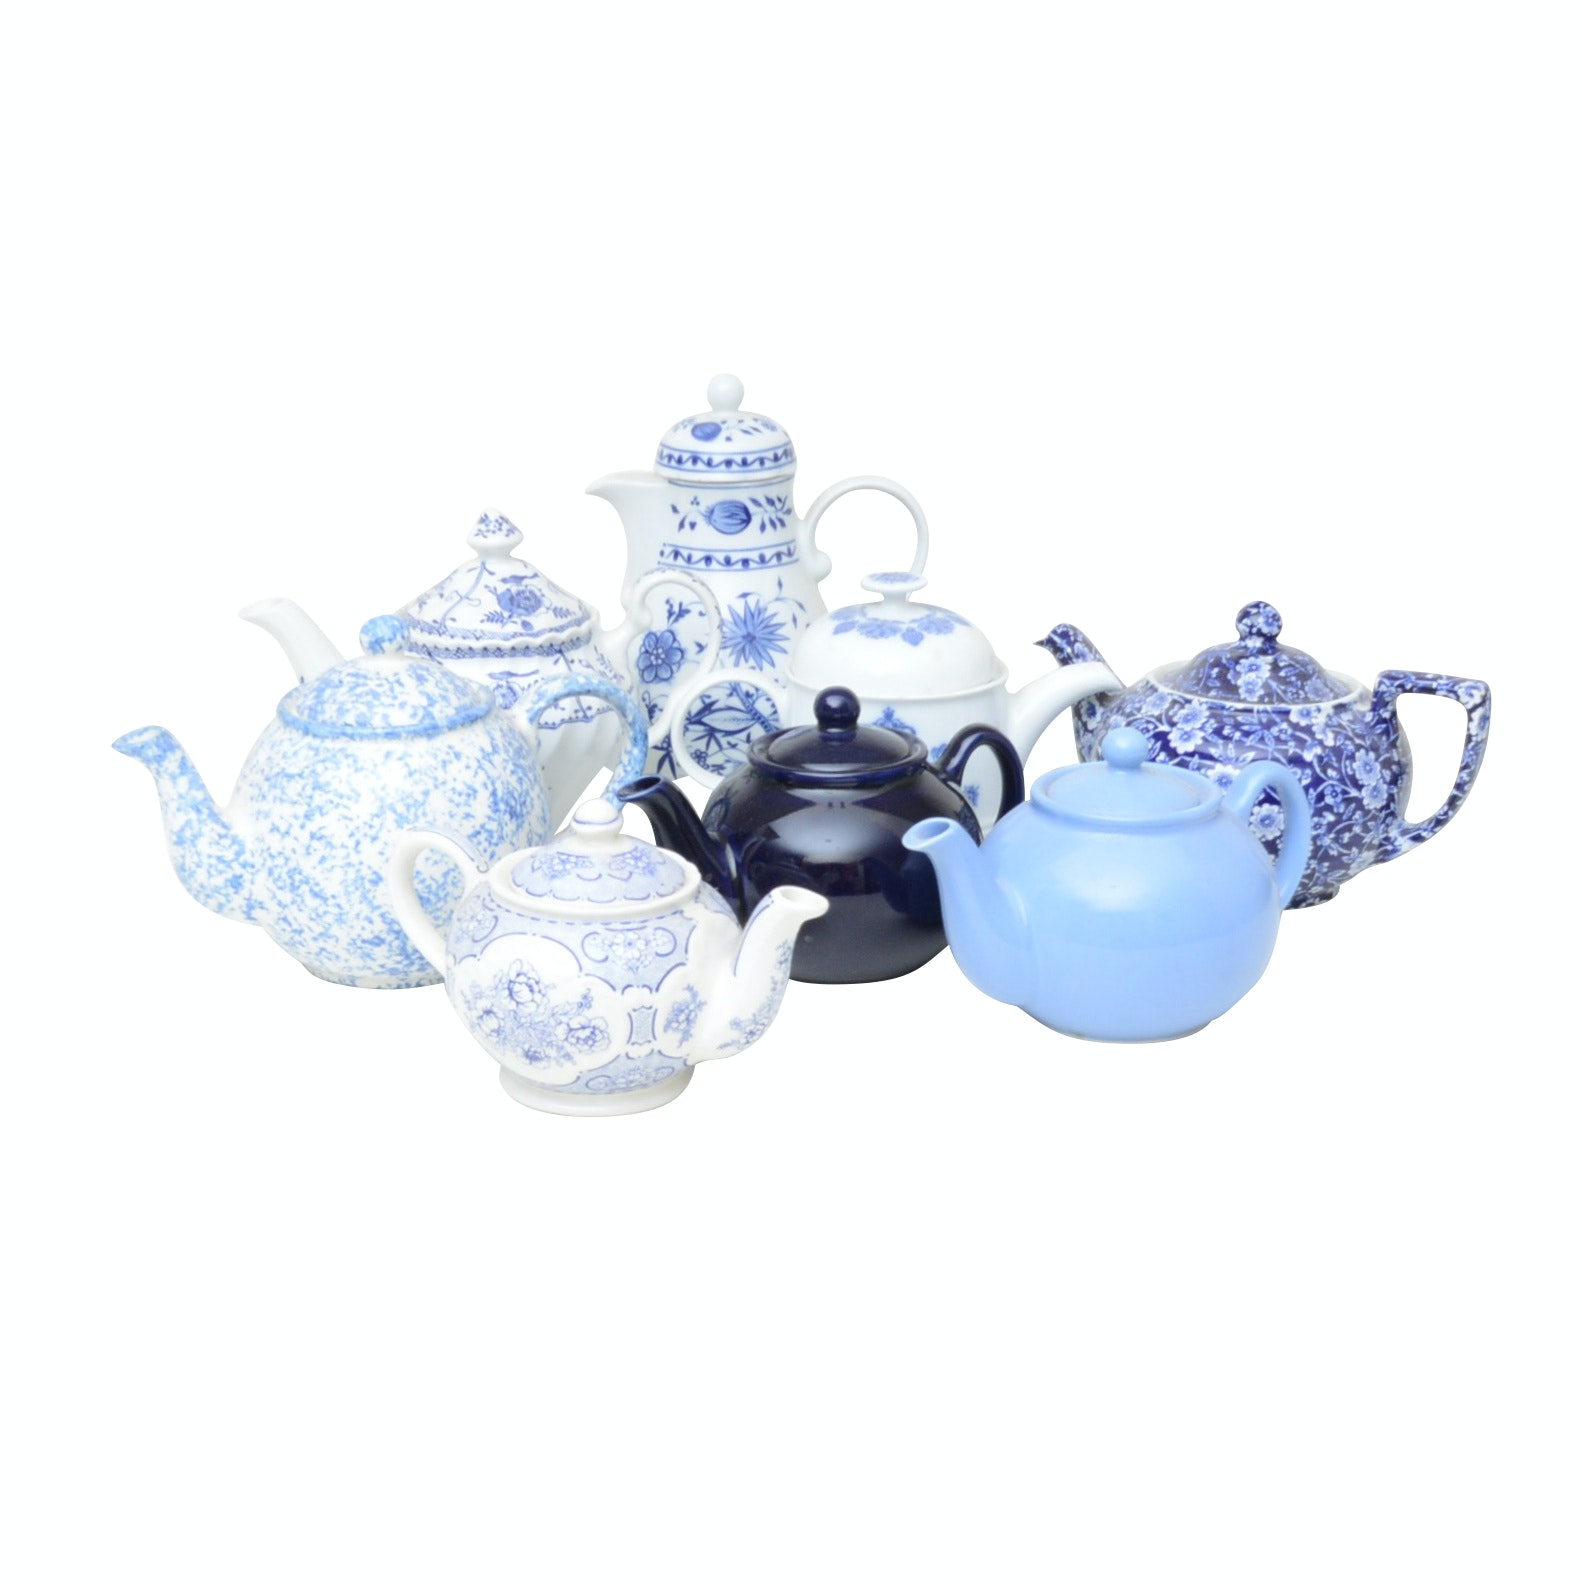 Collection of Blue and White Teapots